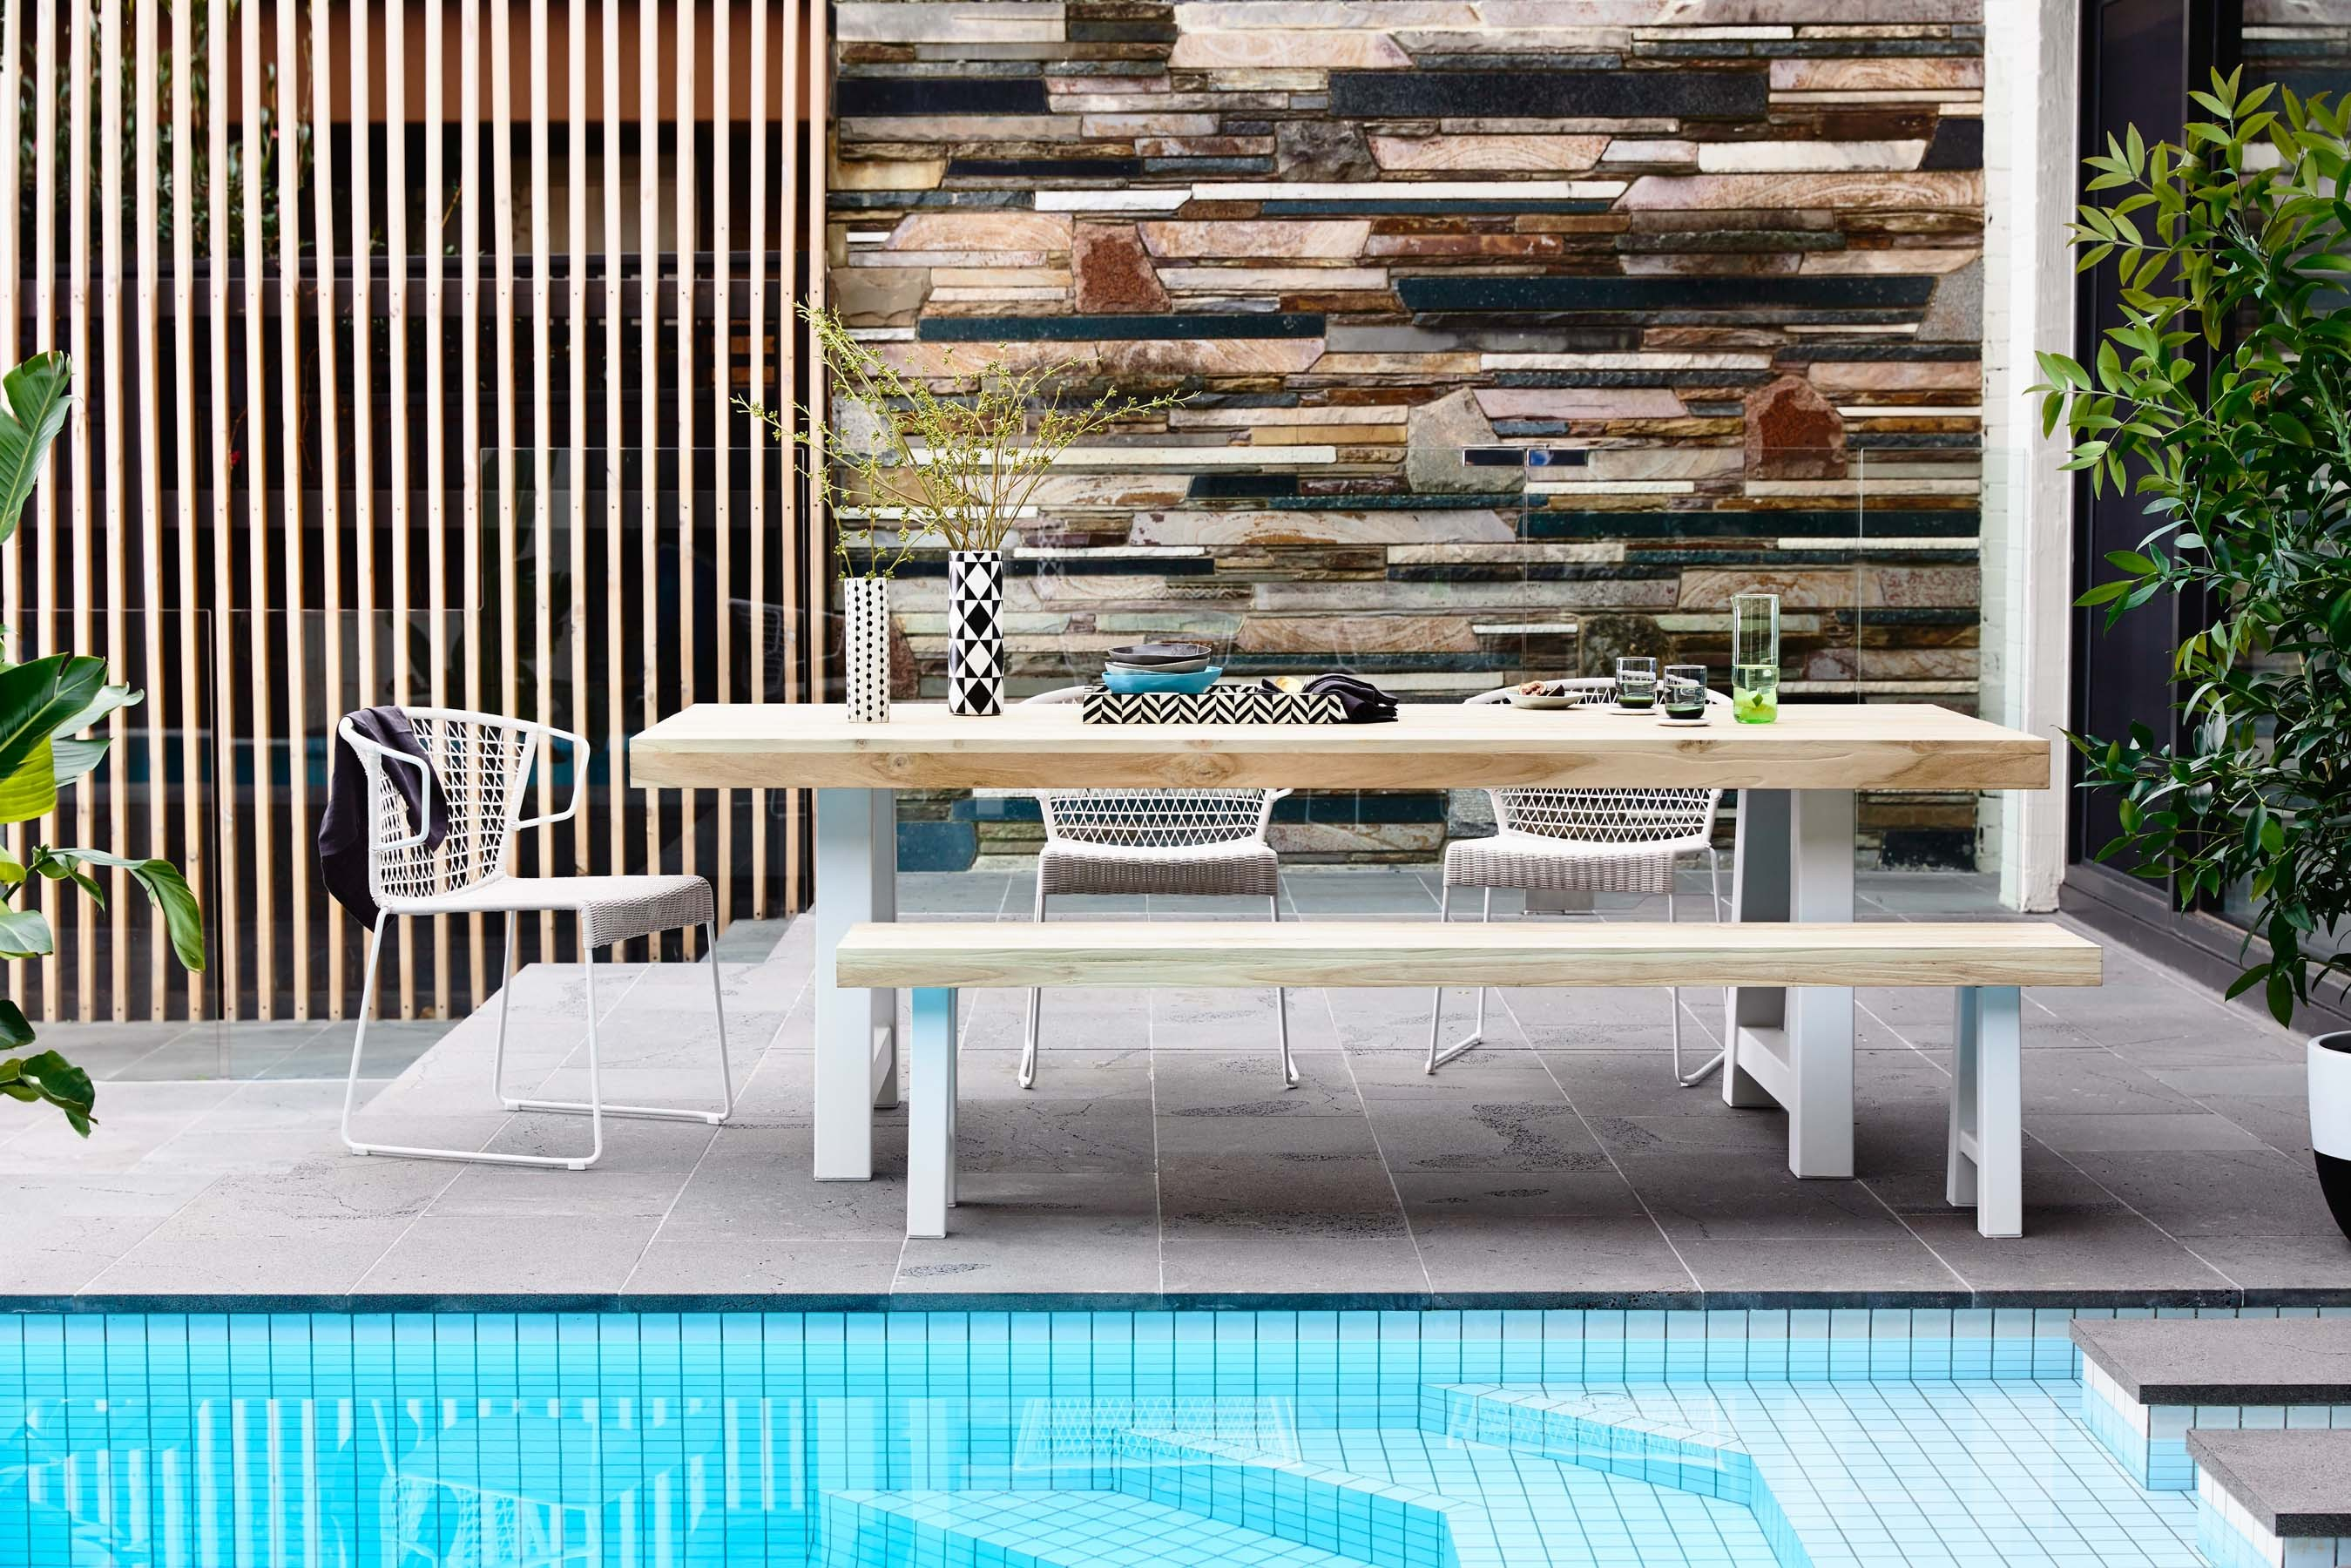 Furniture Gallery Dining-Tables granada-beach-dining-table-05